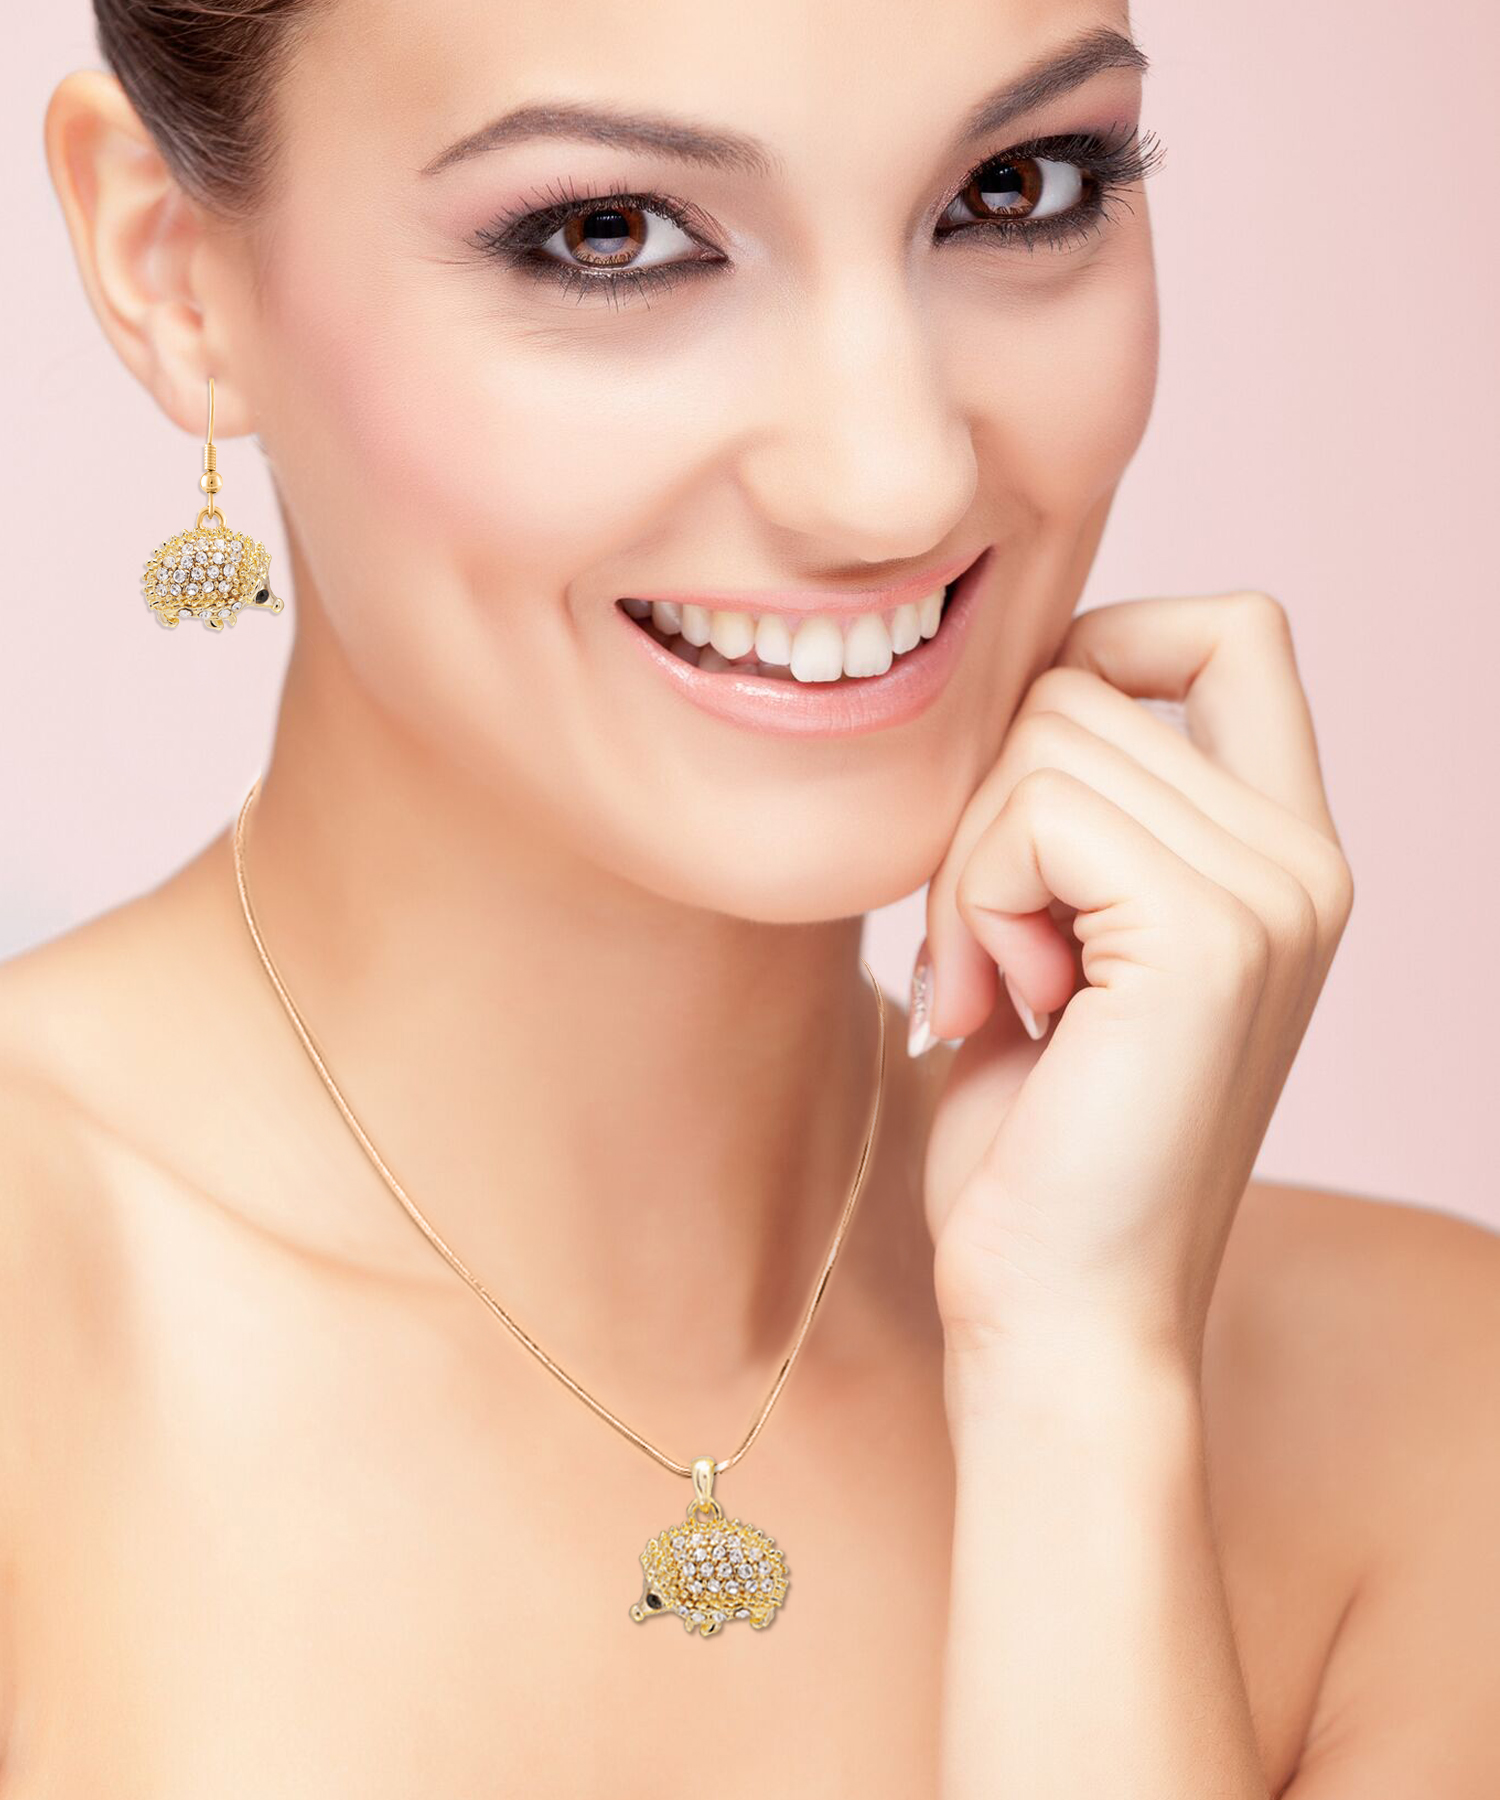 Golden hedgehog earring and necklace set